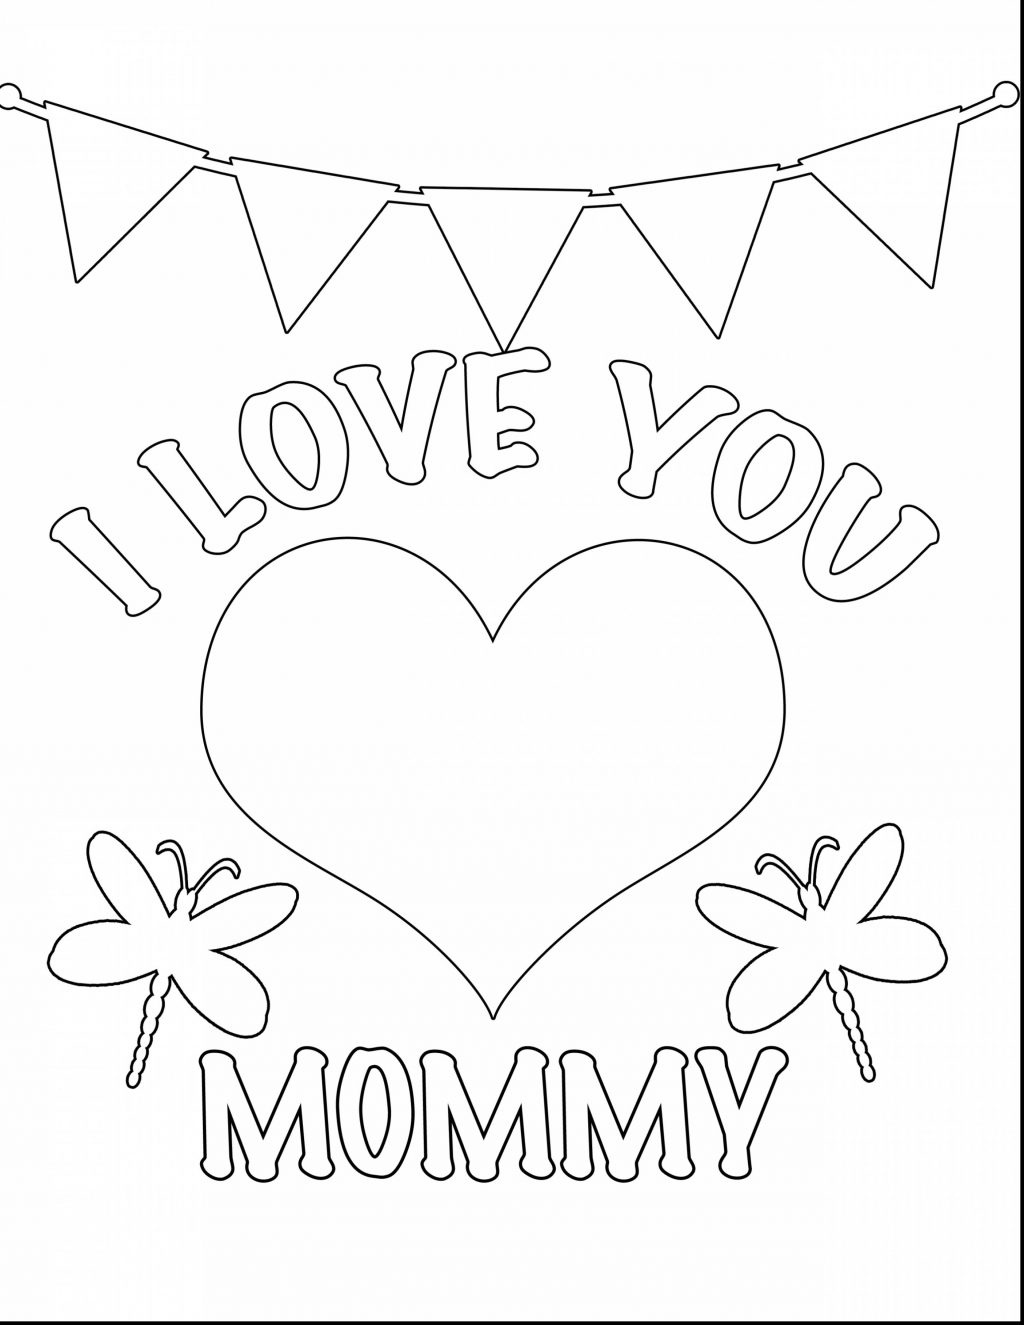 Coloring Page ~ Free Printable Coloring Pages For Toddlers - Free Printable Coloring Pages For Toddlers